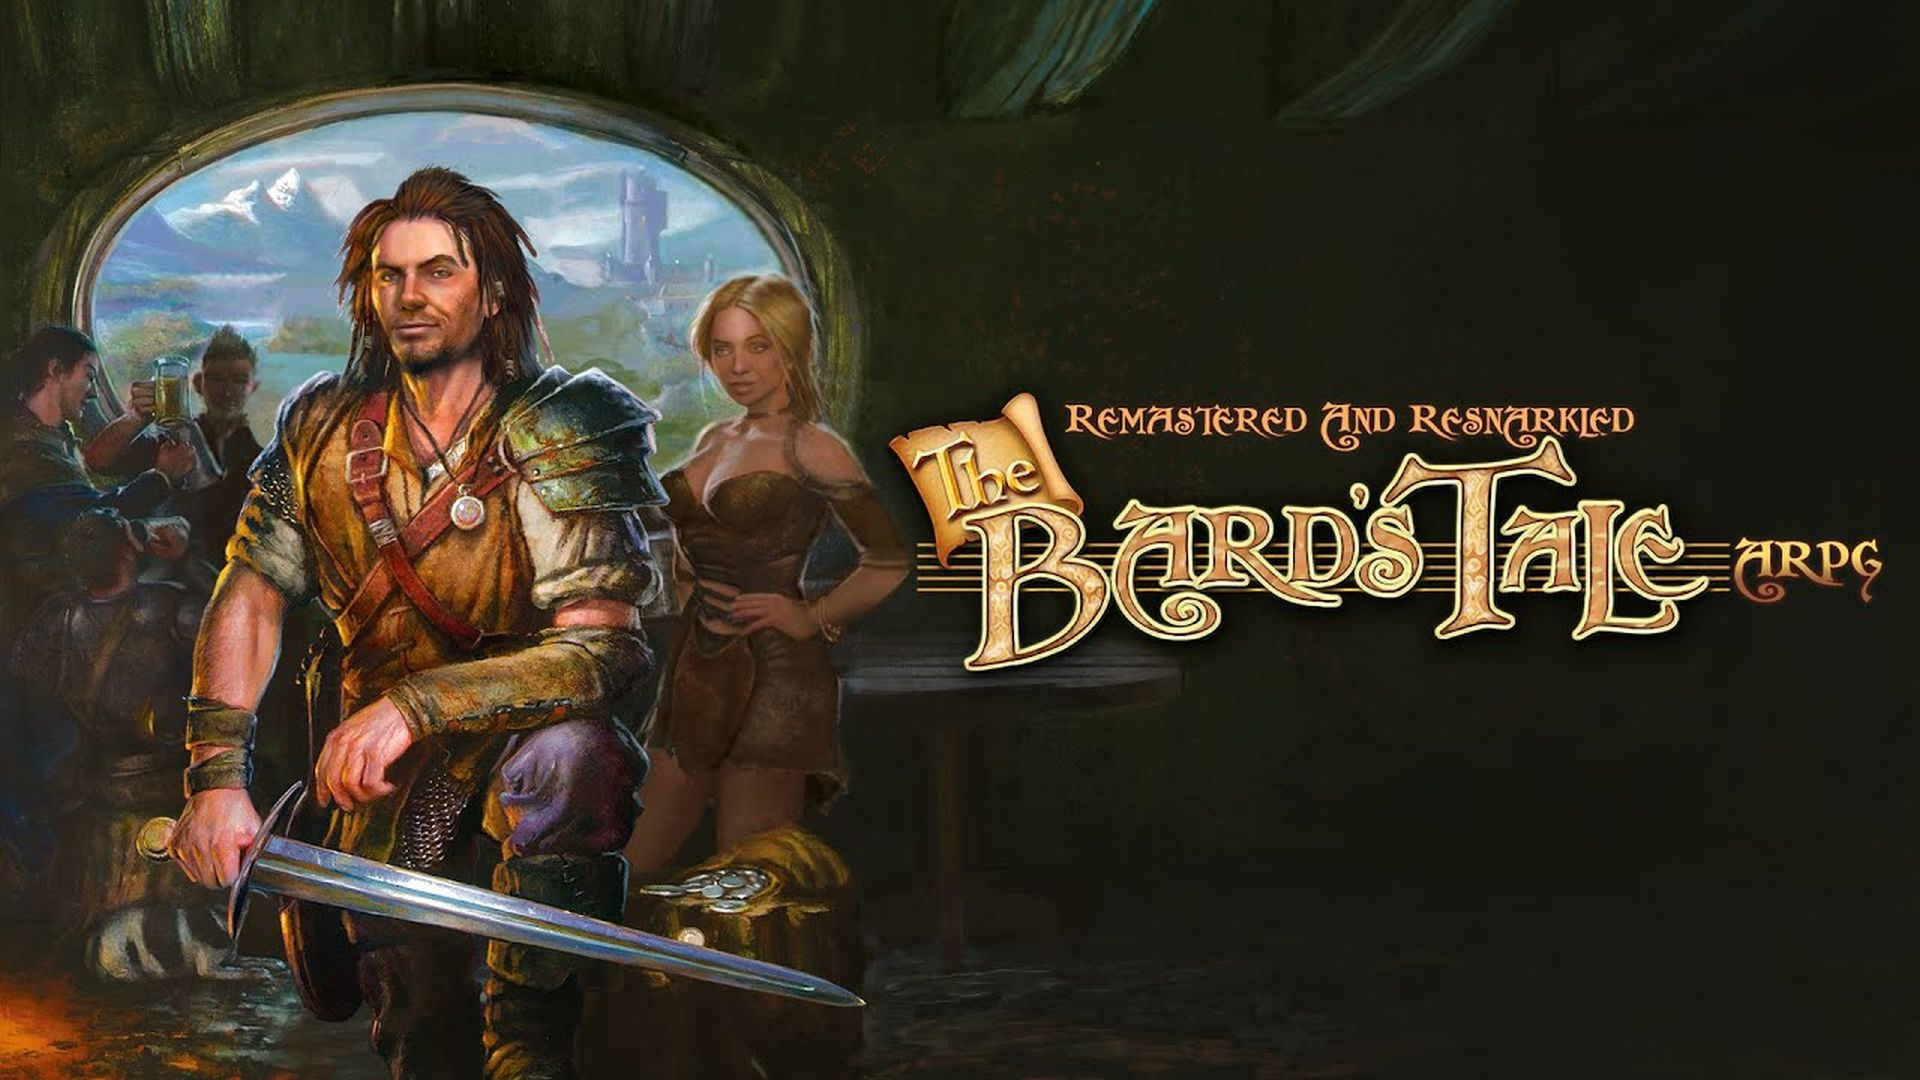 The Bard's Tale ARPG - Remastered and Resnarkled